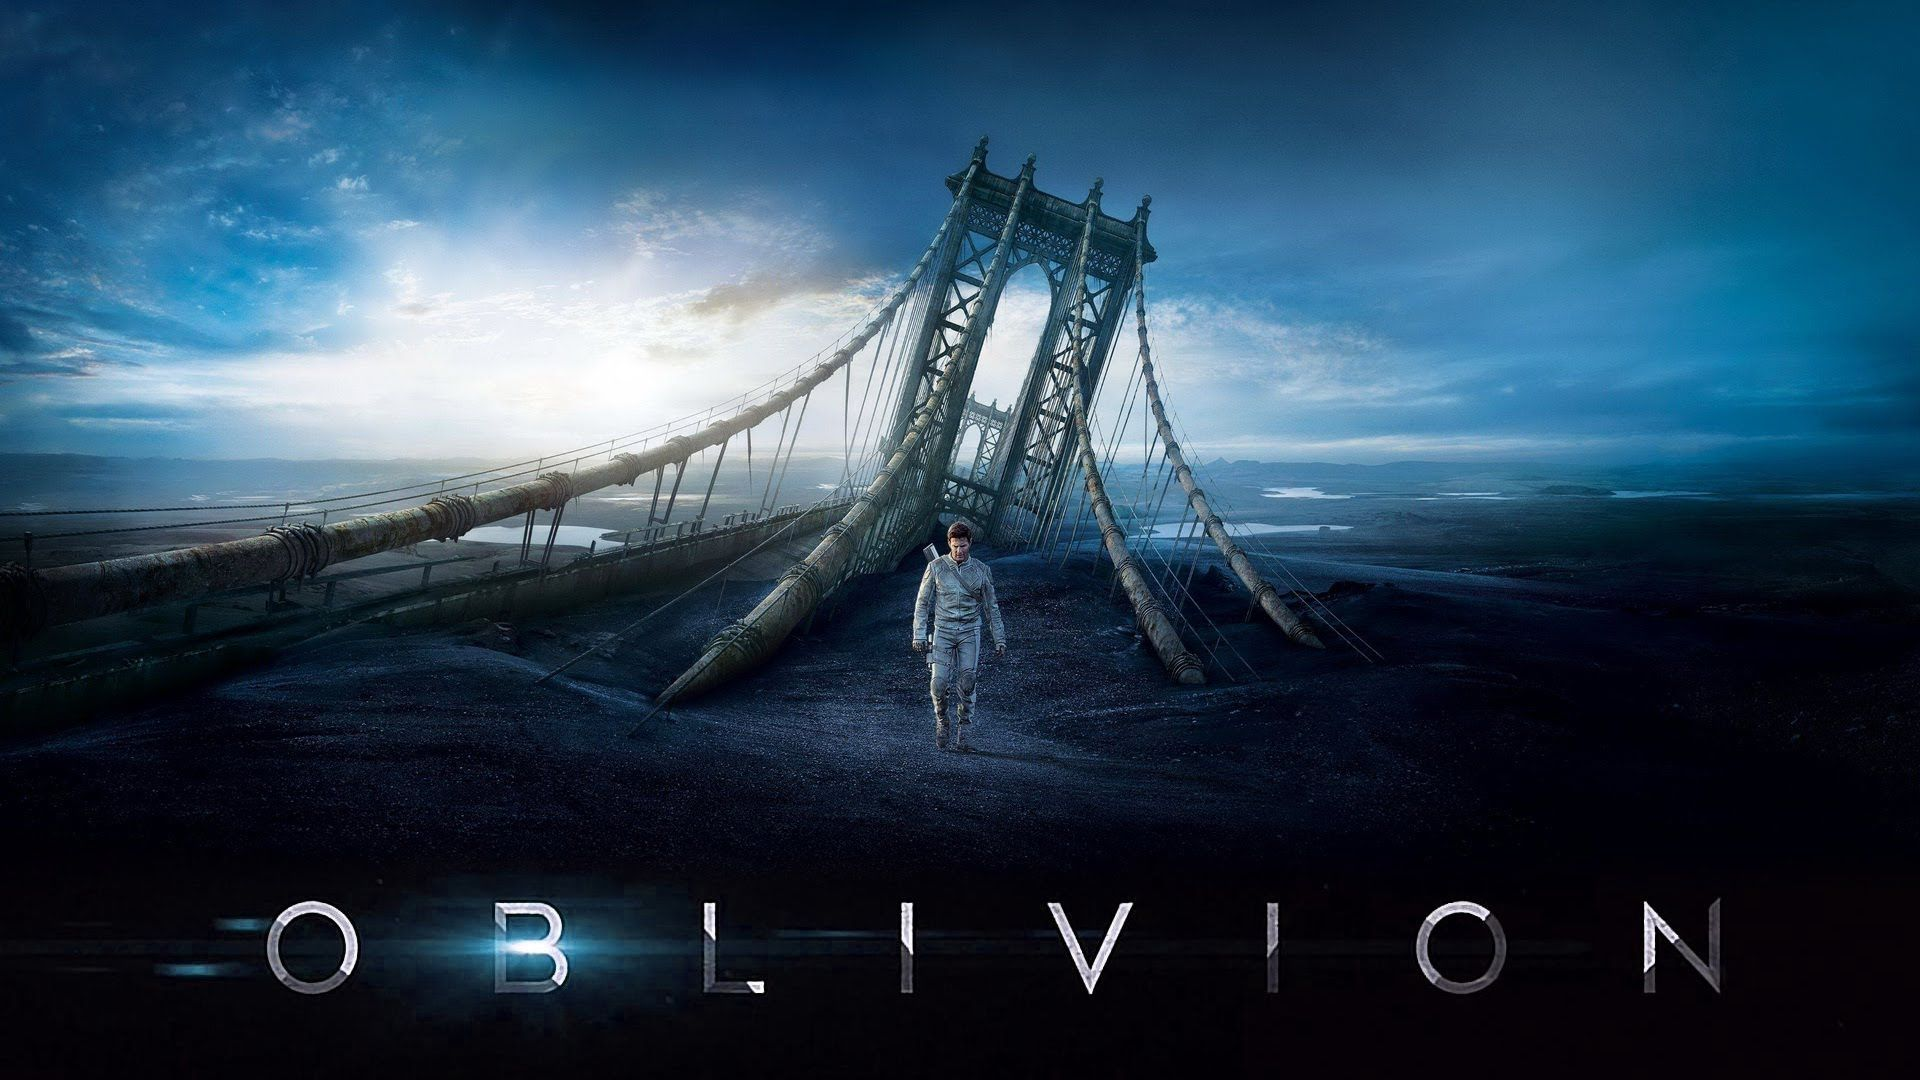 M83 Oblivion Feat Susanne Sundfor Extended Mix Oblivion Movie Tom Cruise Movies Oblivion